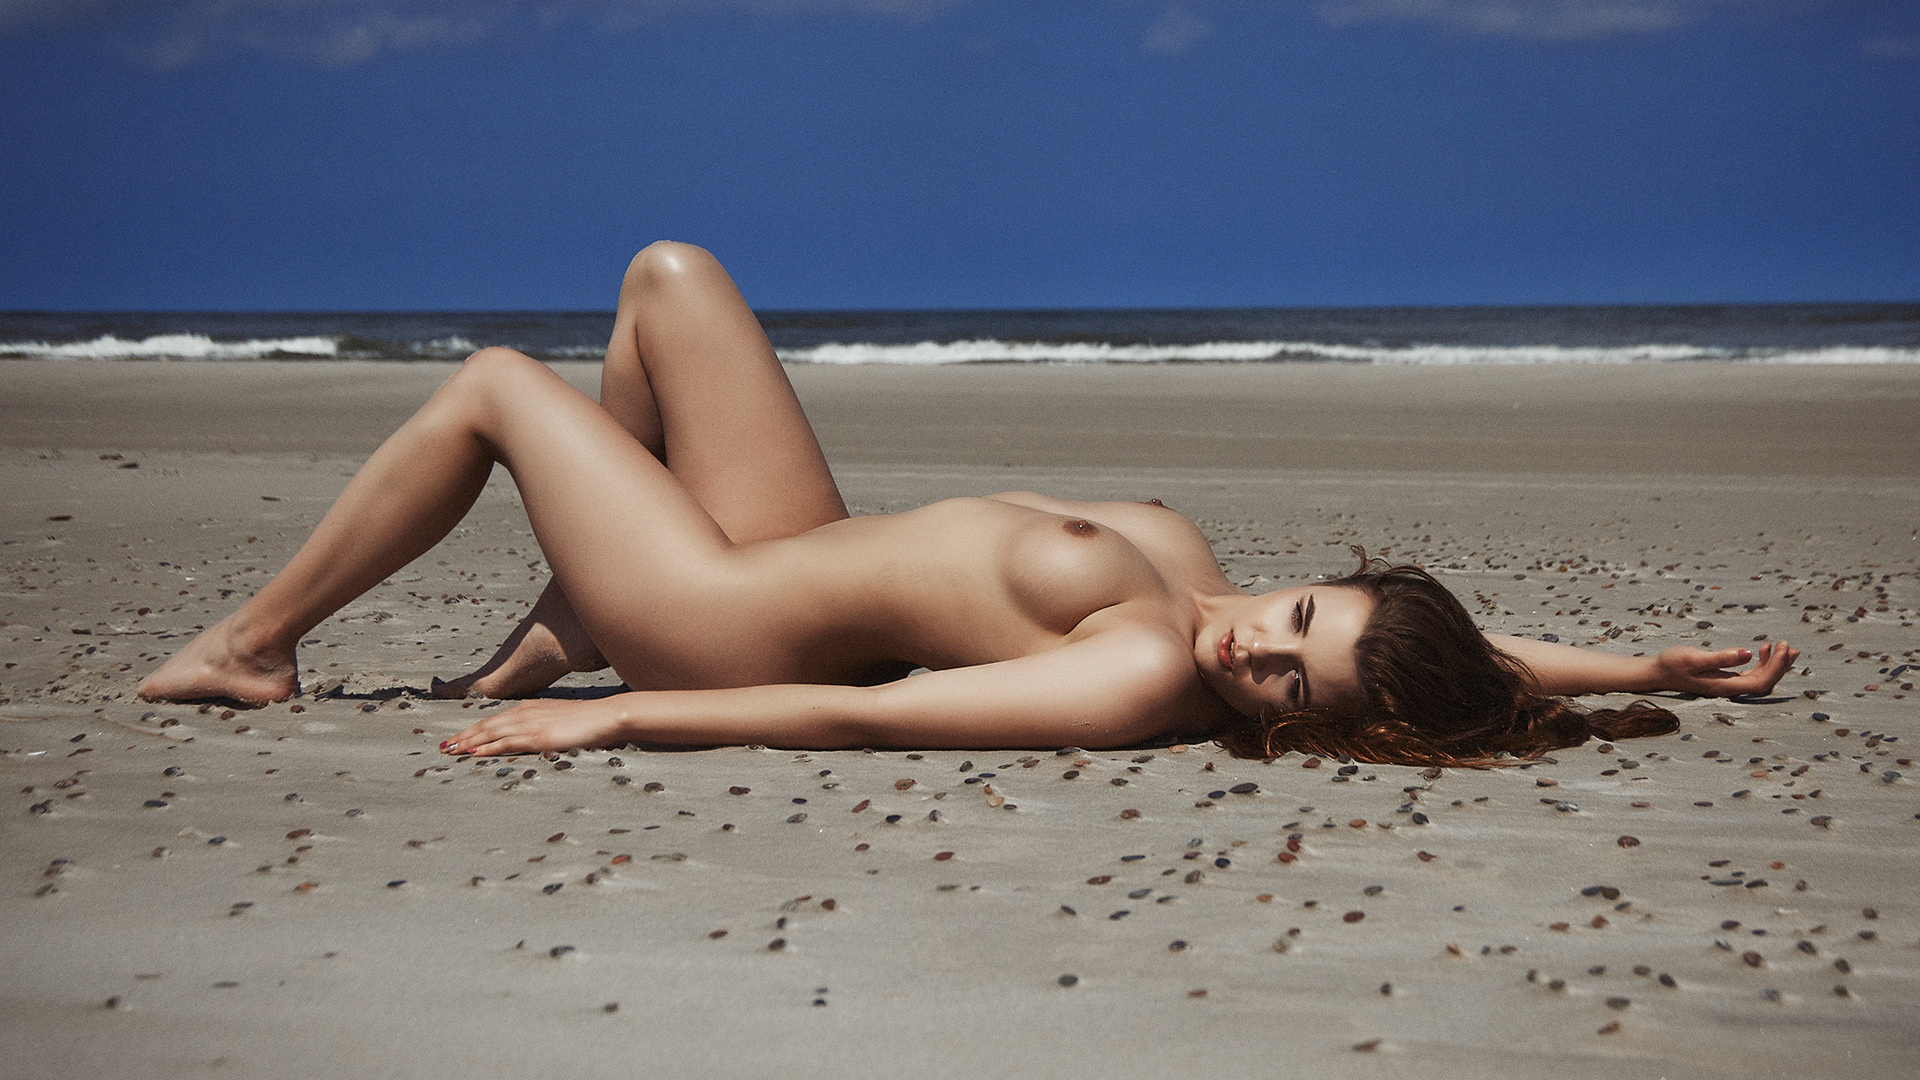 Hot women sunbathing naked, wet nude bollywood actresses